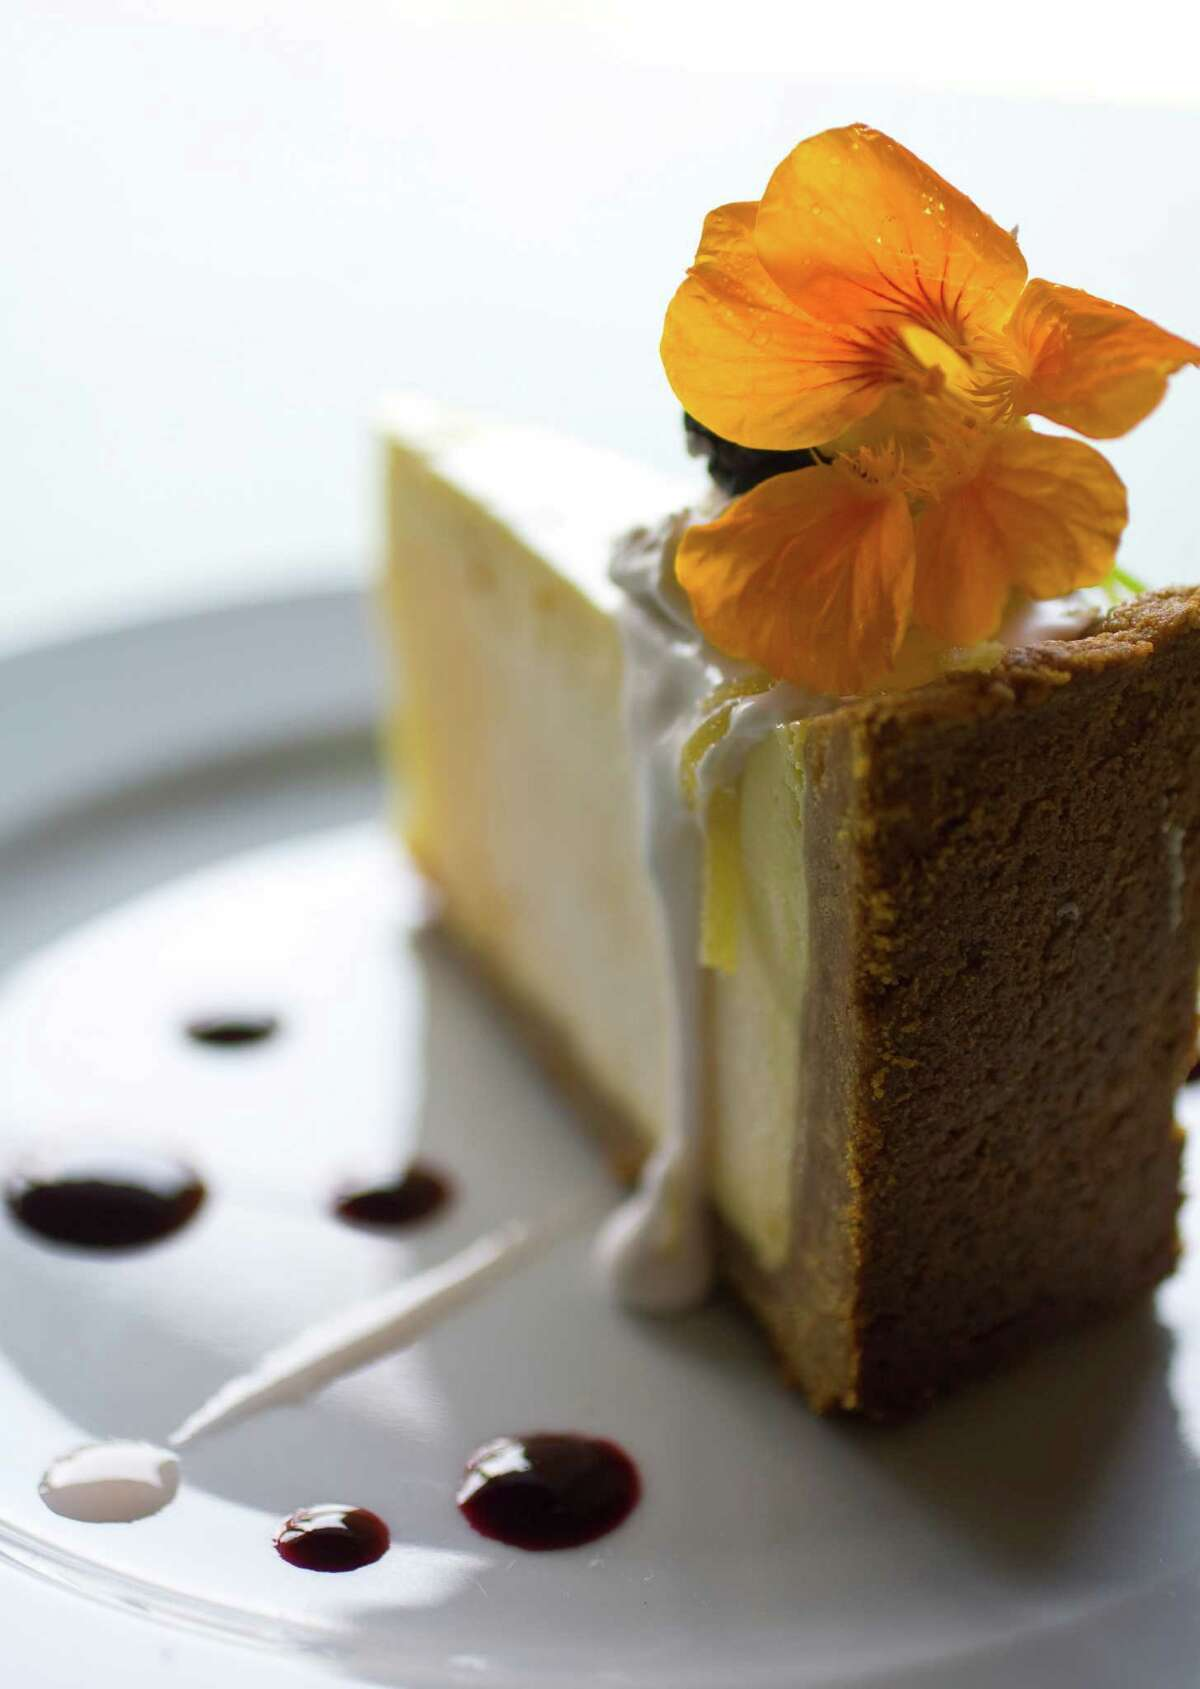 Cheesecake at Canopy restaurant.